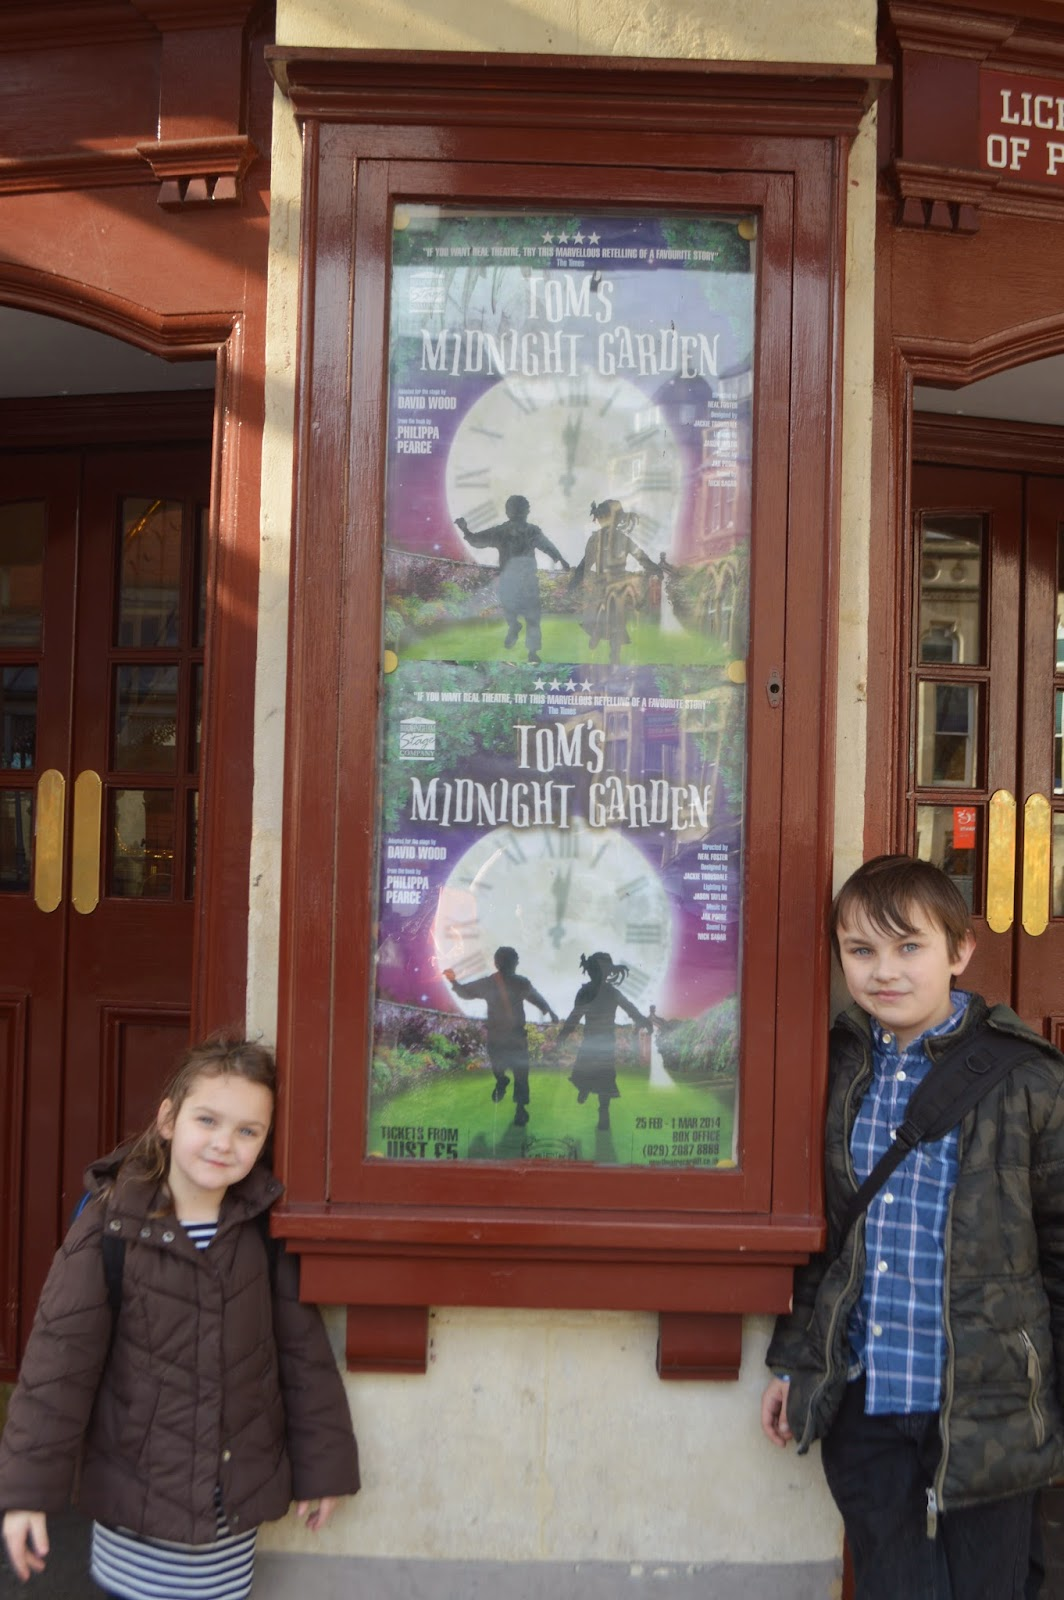 Cardiff Half Term St Davids Centre Wales New Theatre Tom's Midnight Garden